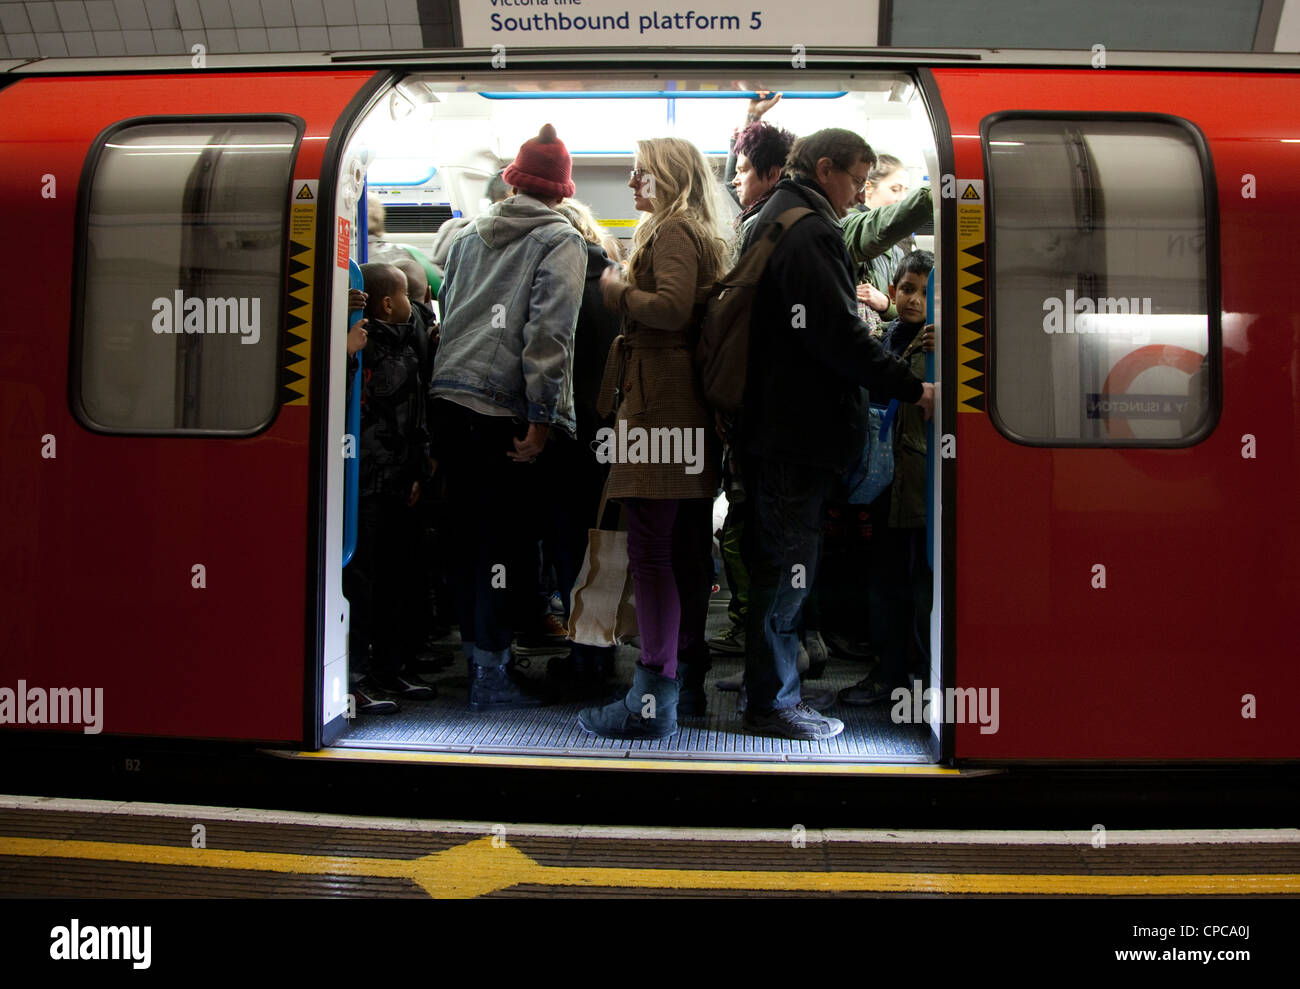 Crowded London Underground carriage during morning rush hour - Stock Image